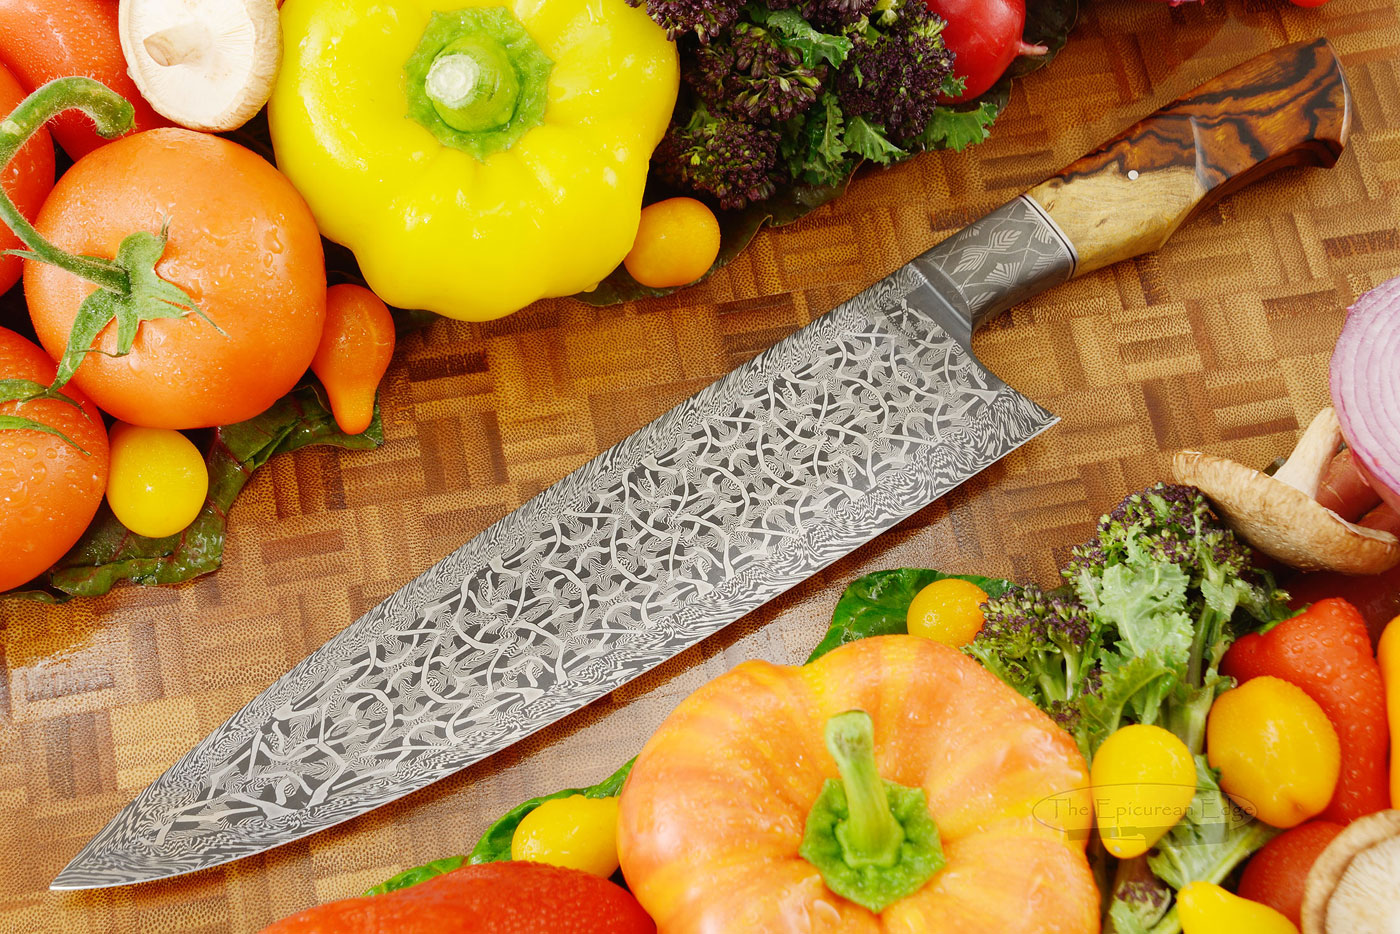 Mosaic Damascus Chef's Knife (10-1/2) with Ironwood - <i>Best Damascus</i>, OKCA 2019